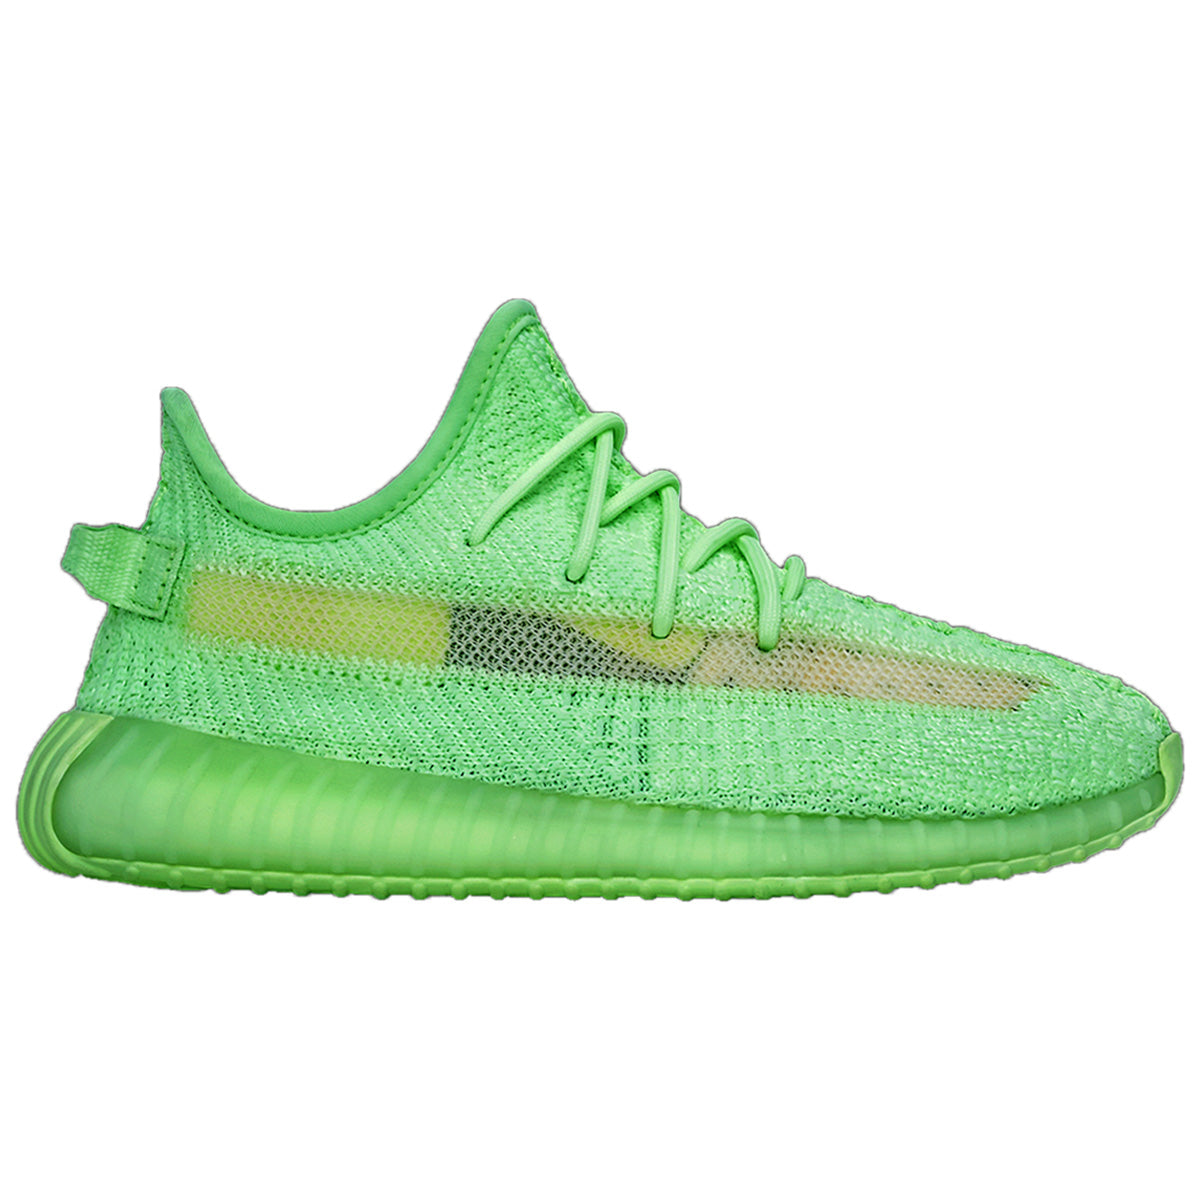 buy popular 95ae9 1abd4 Adidas Yeezy Boost 350 V2 Gid Little Kids Style : Eg6884